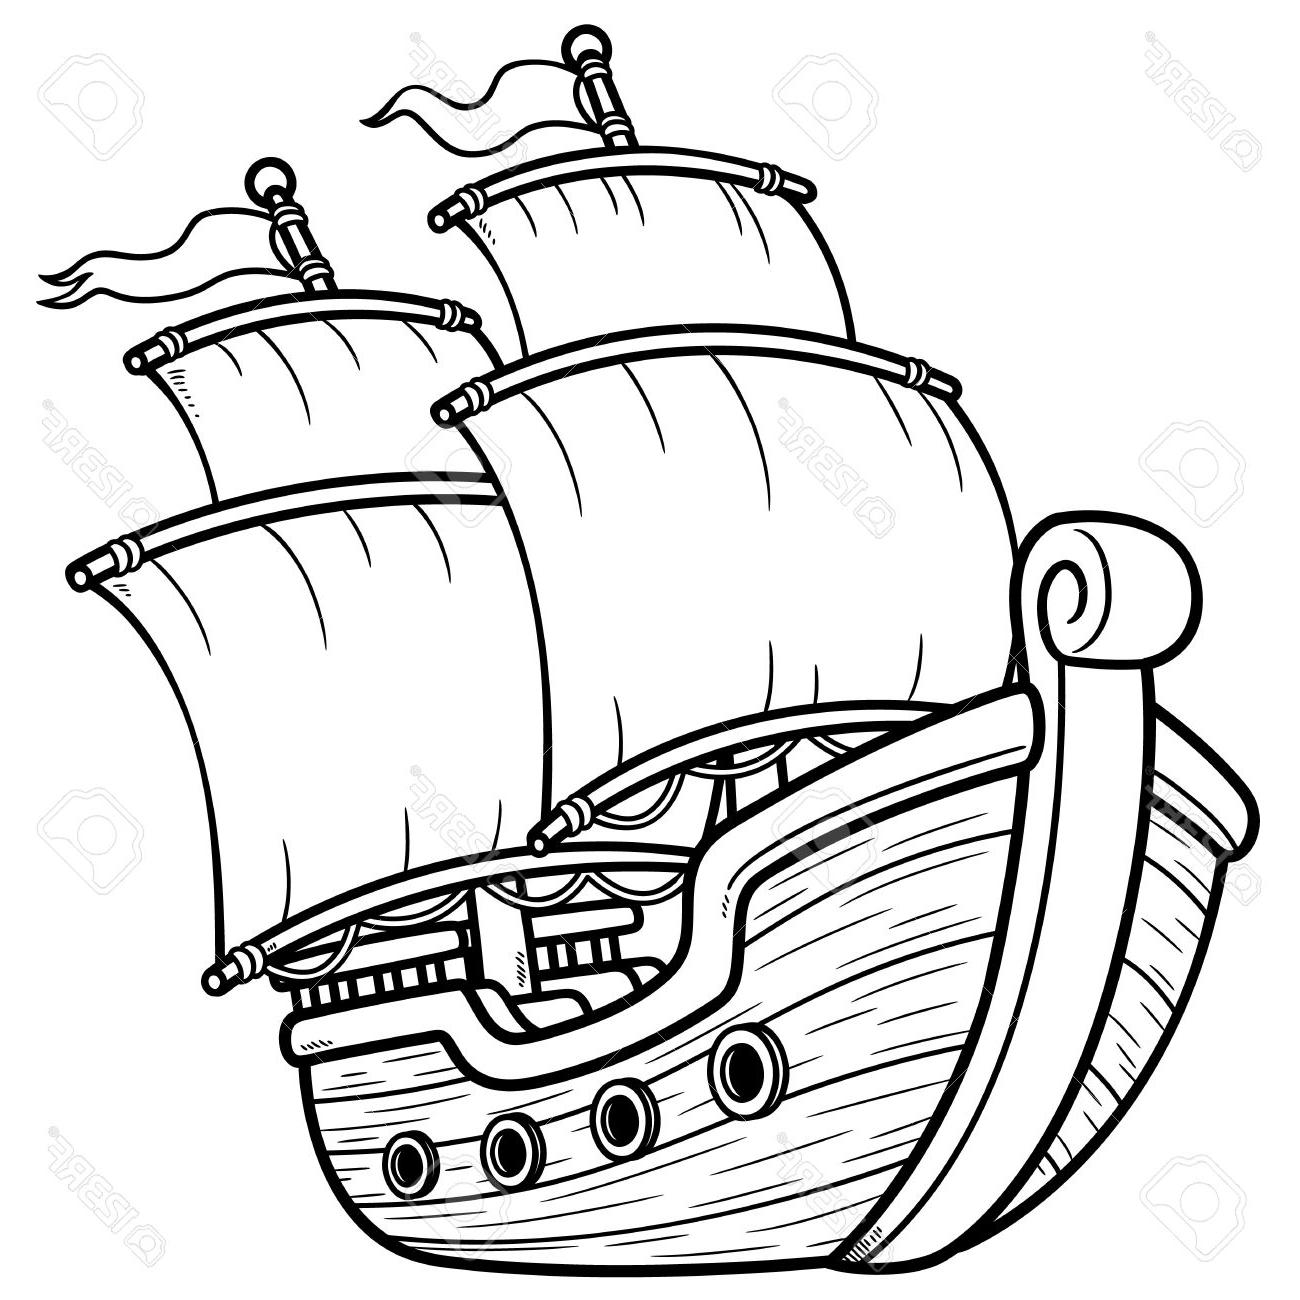 1300x1300 Pirate Ship Outline Images